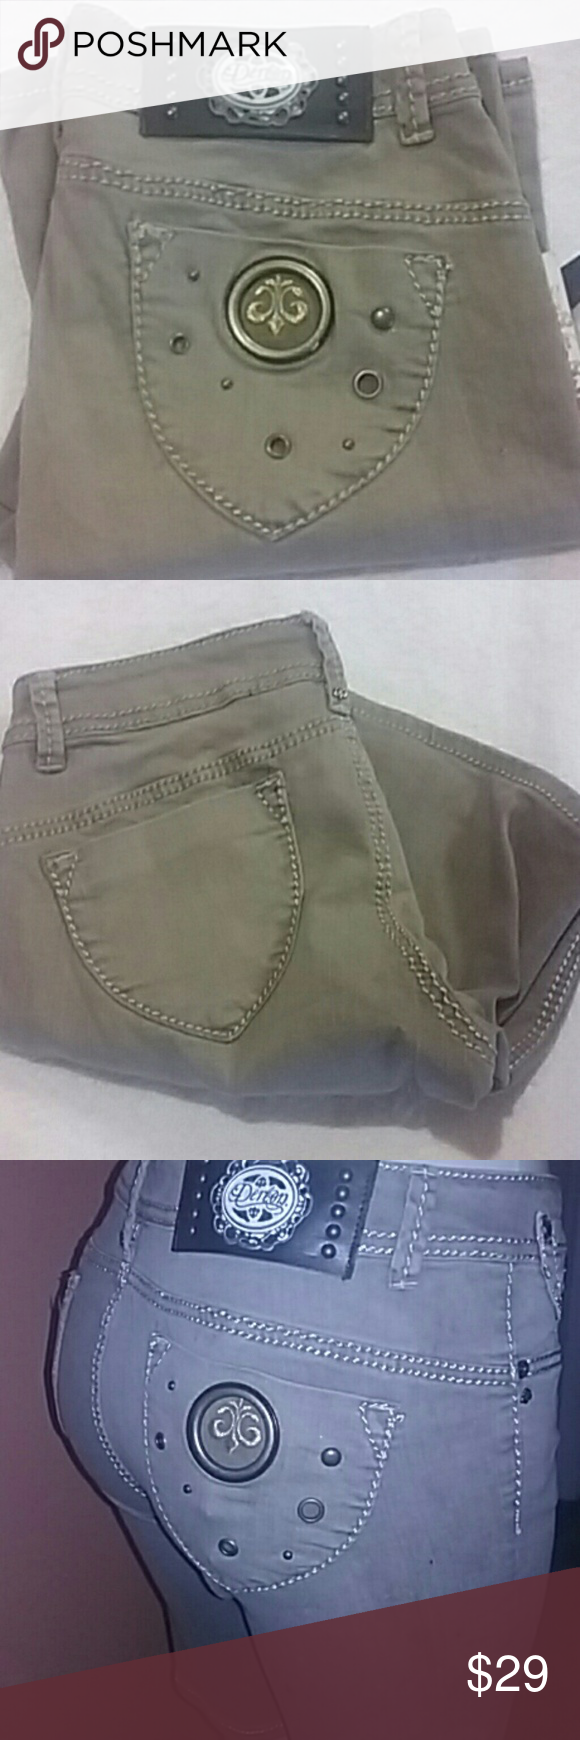 "Dereon brown wash Bermuda jeans shorts. Sz5/6 New with tag dereon brown wash Bermuda shorts. Size 5/6. Great stretch soft denim material. Color Samoa wash . Last store display item. Please pay attention. To measurements.  Great stretch fabric. Fits junior 7 also. Measurements  waist 14"" flat. Rise 8.5"". Inseam 10"" Dereon Jeans Ankle & Cropped"